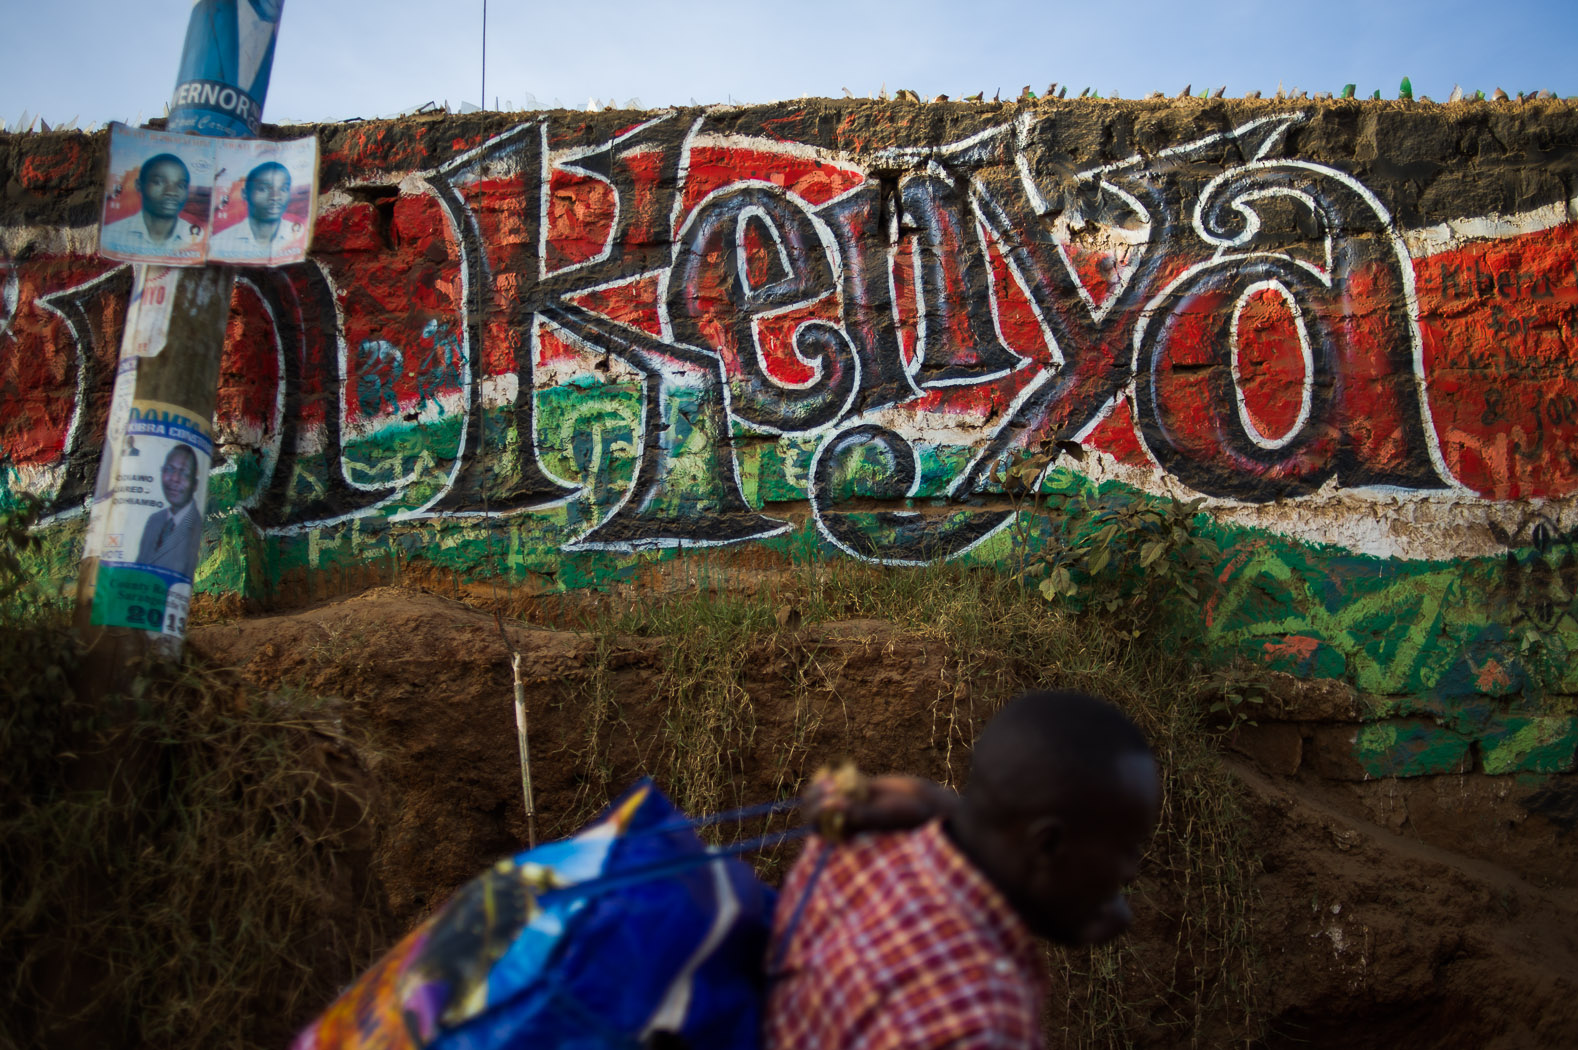 Ahead of Kenya's 2013, graffiti emerged throughout the country—particularly in the areas worst hit in 2007/8—advocating peace.